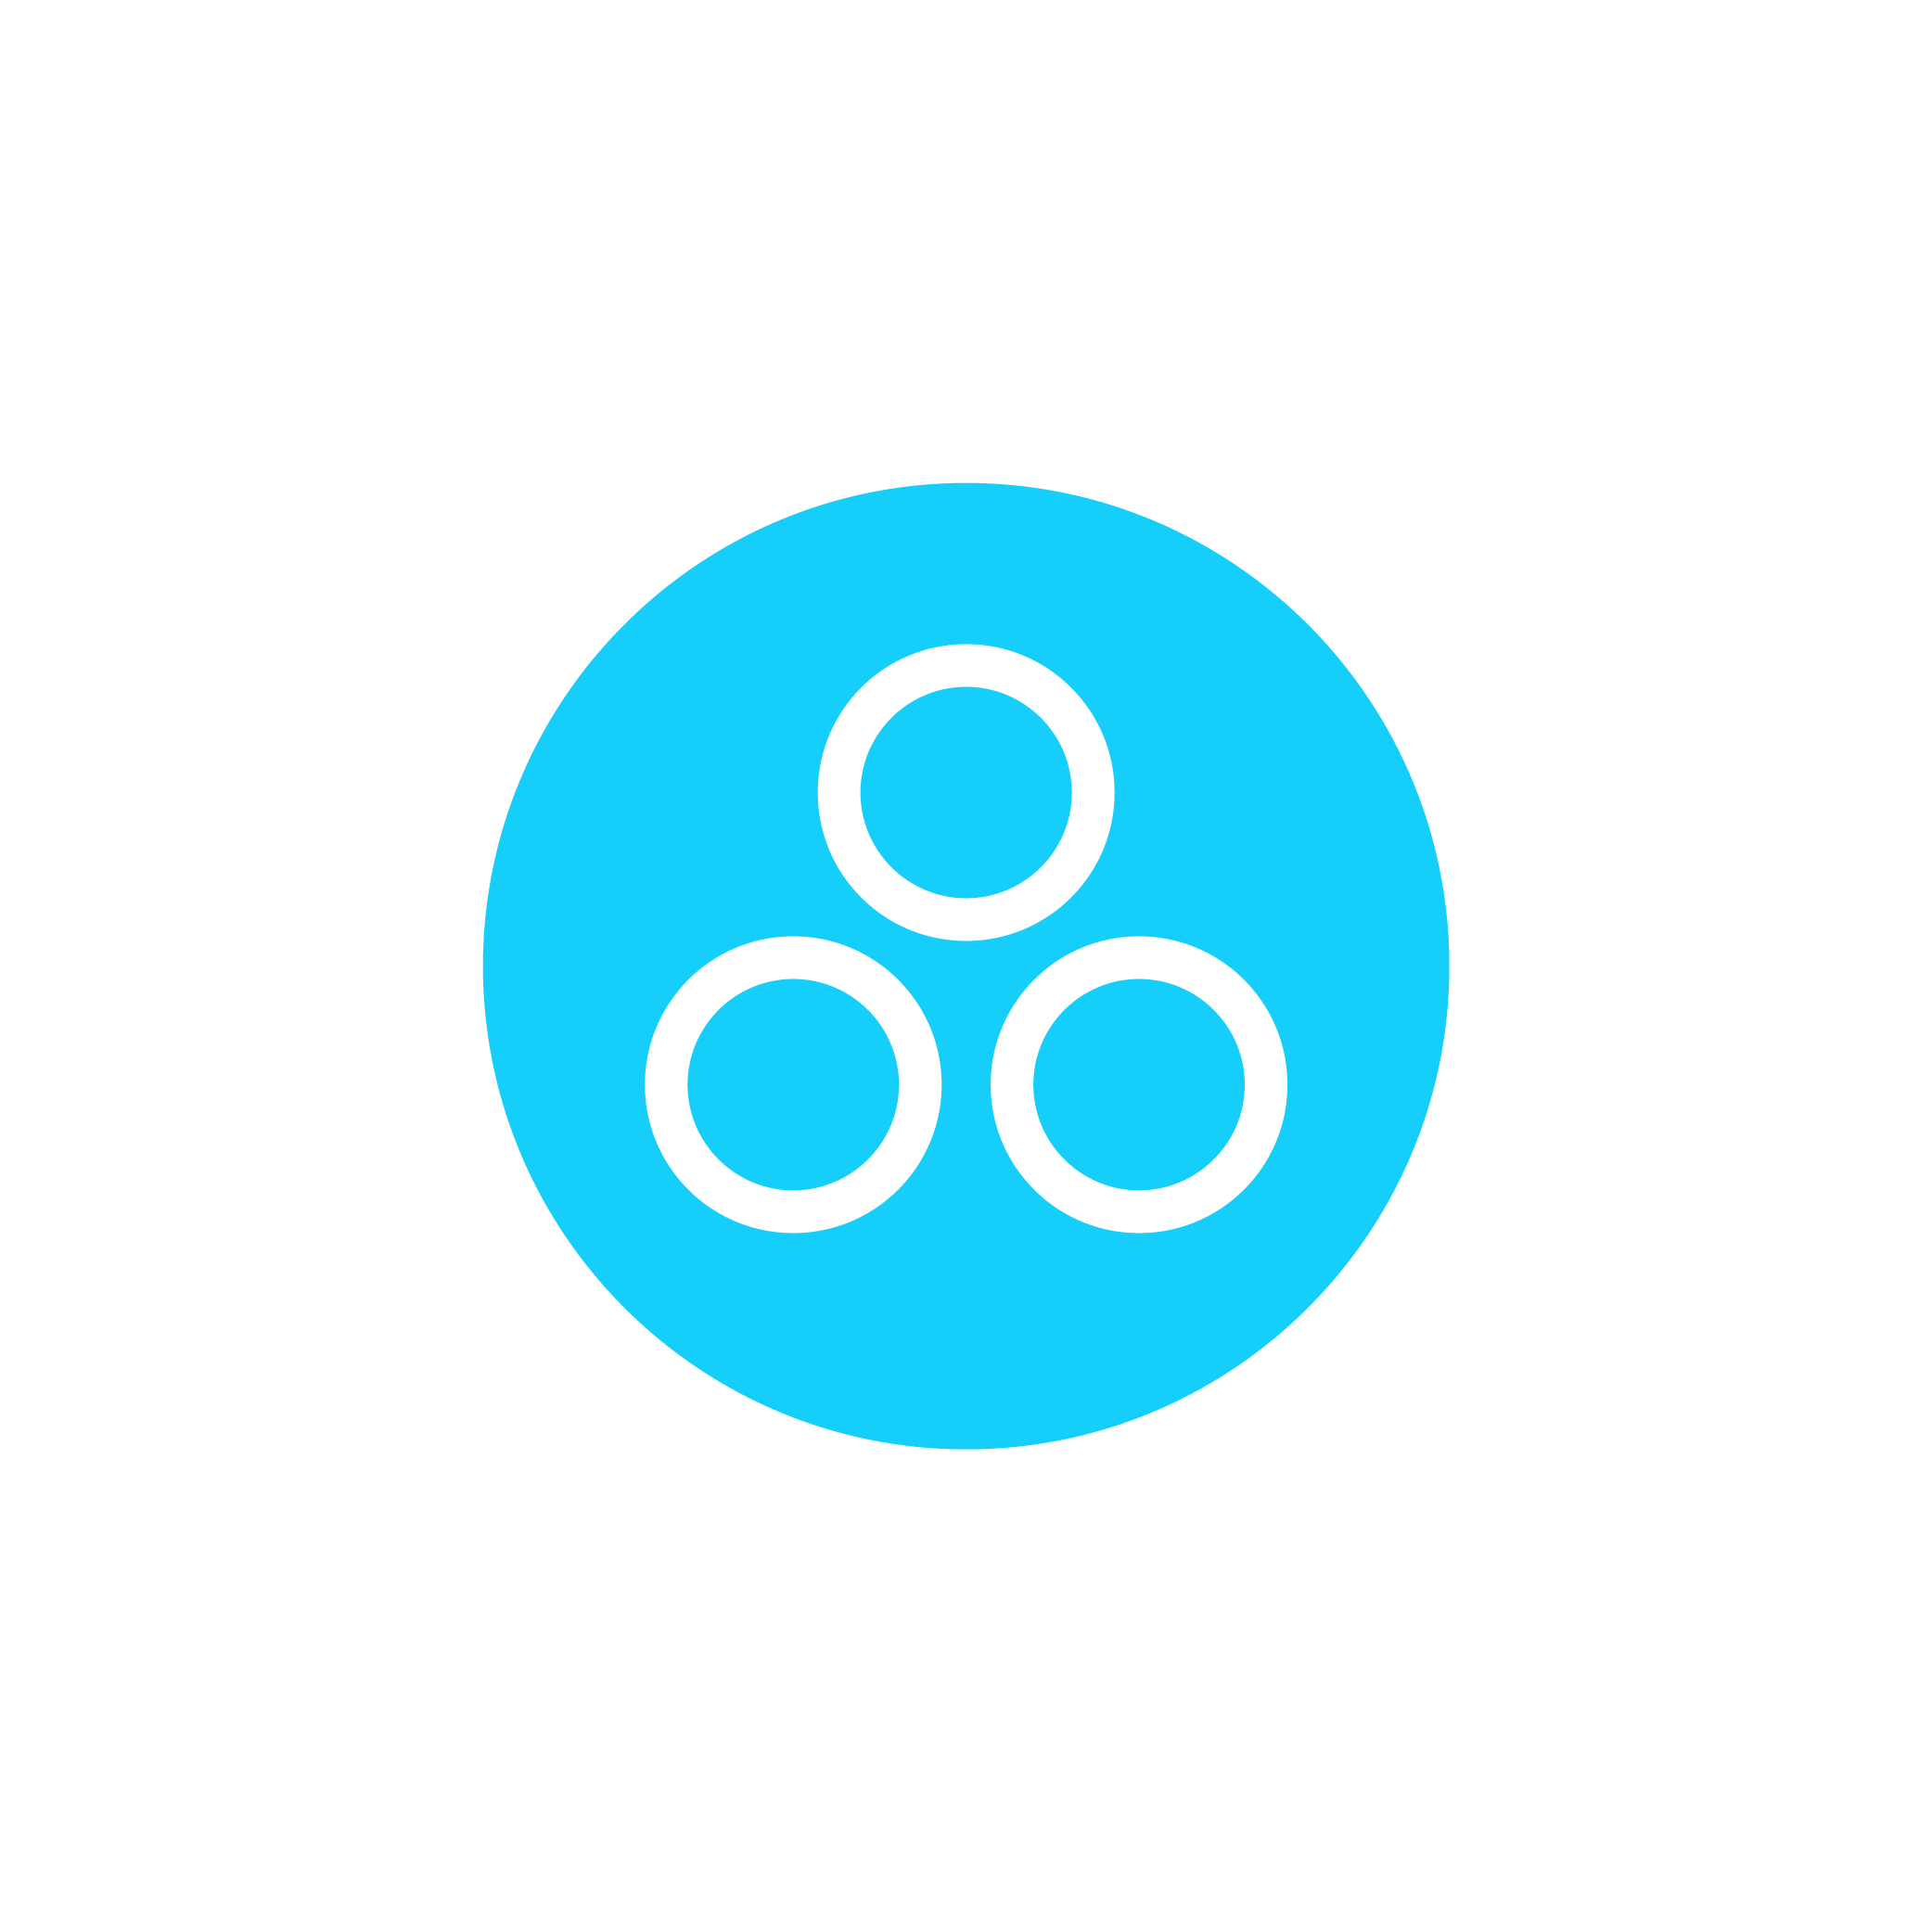 PBS_ODiN-ICONS-Wholesale SOLO-01.png